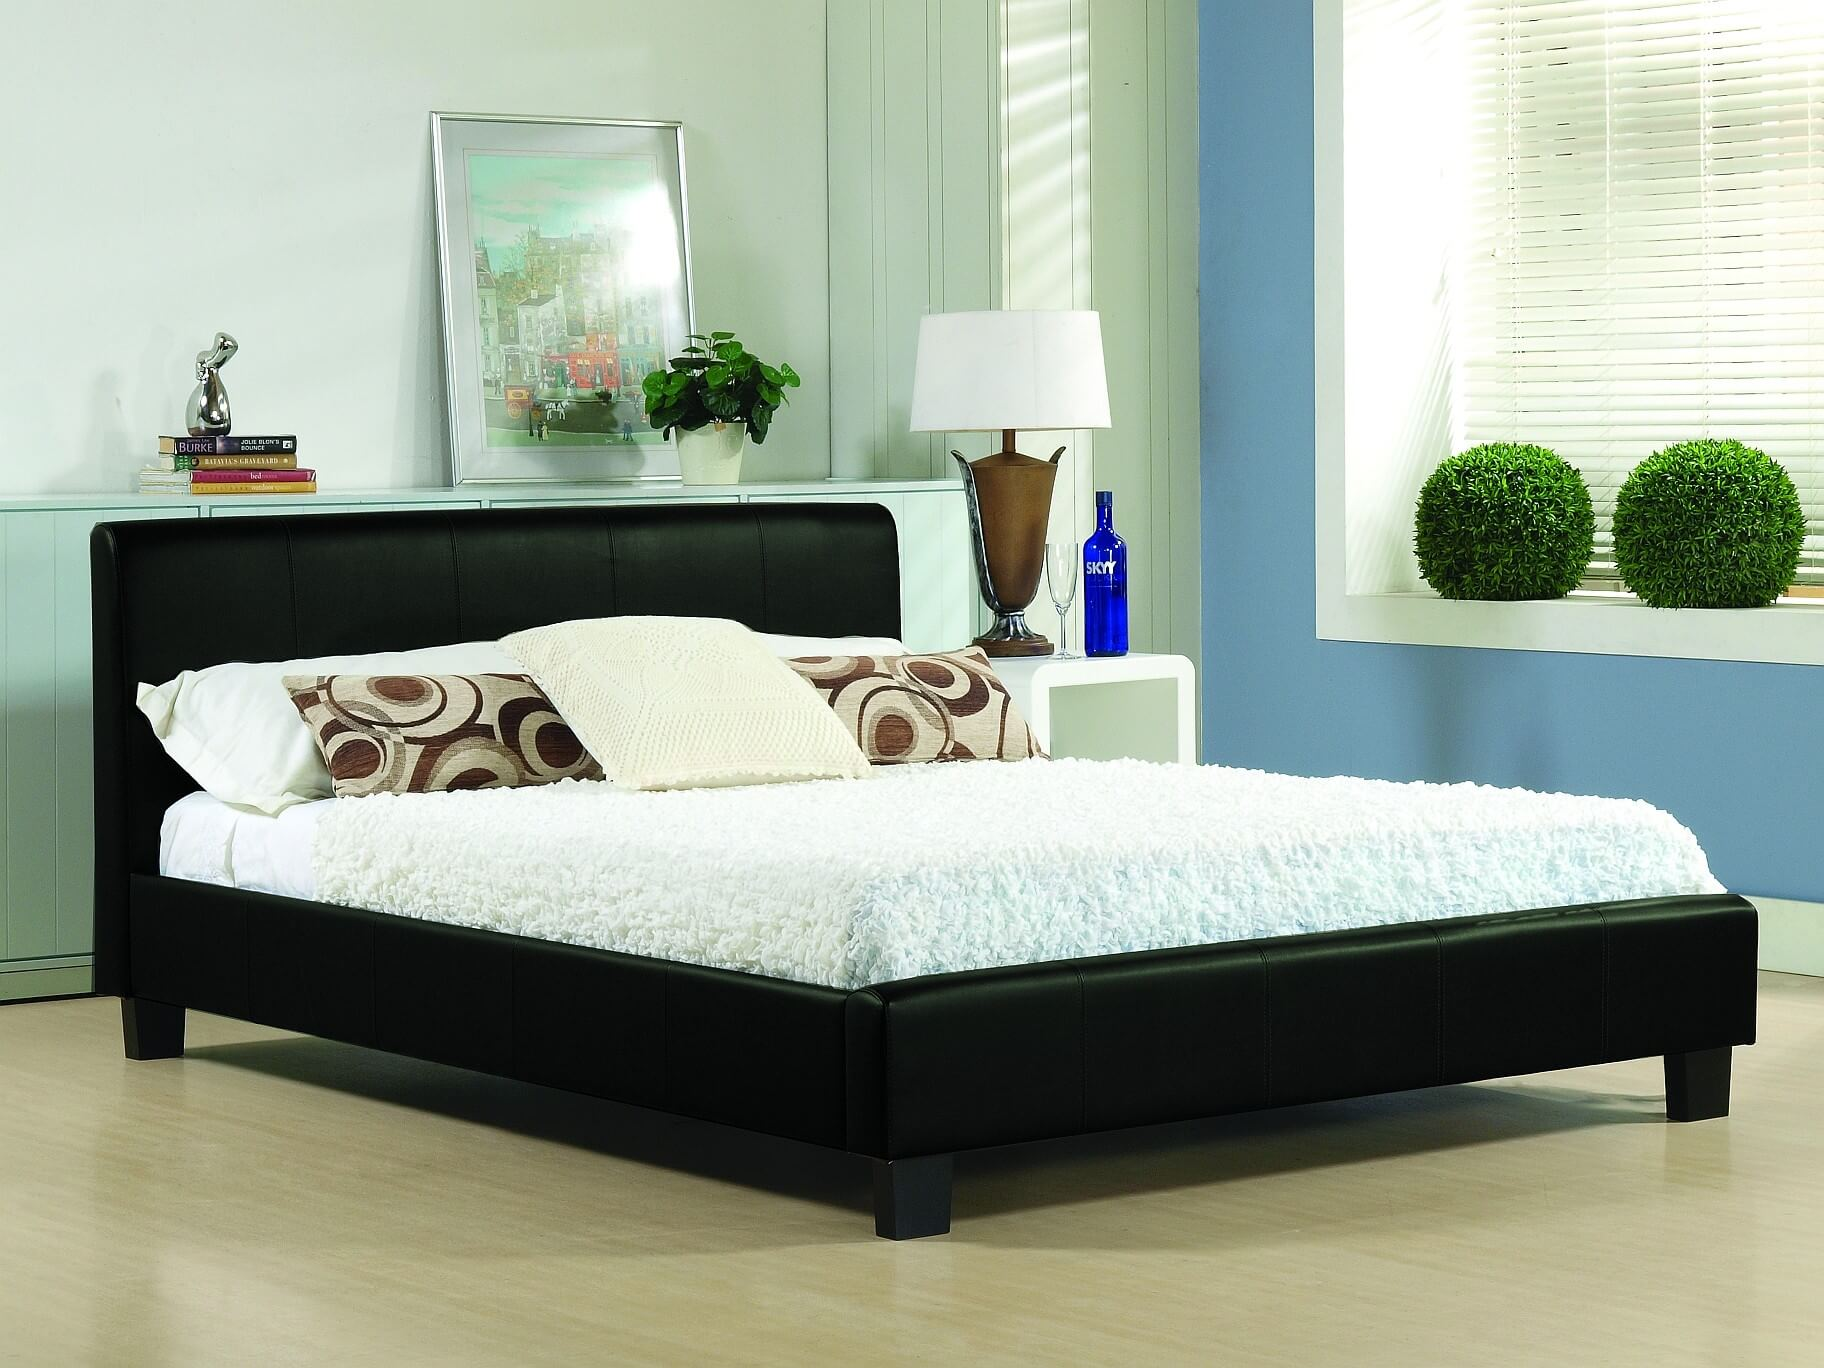 https://www.firstfurniture.co.uk/pub/media/catalog/product/h/a/hamburg_black_1_2.jpg